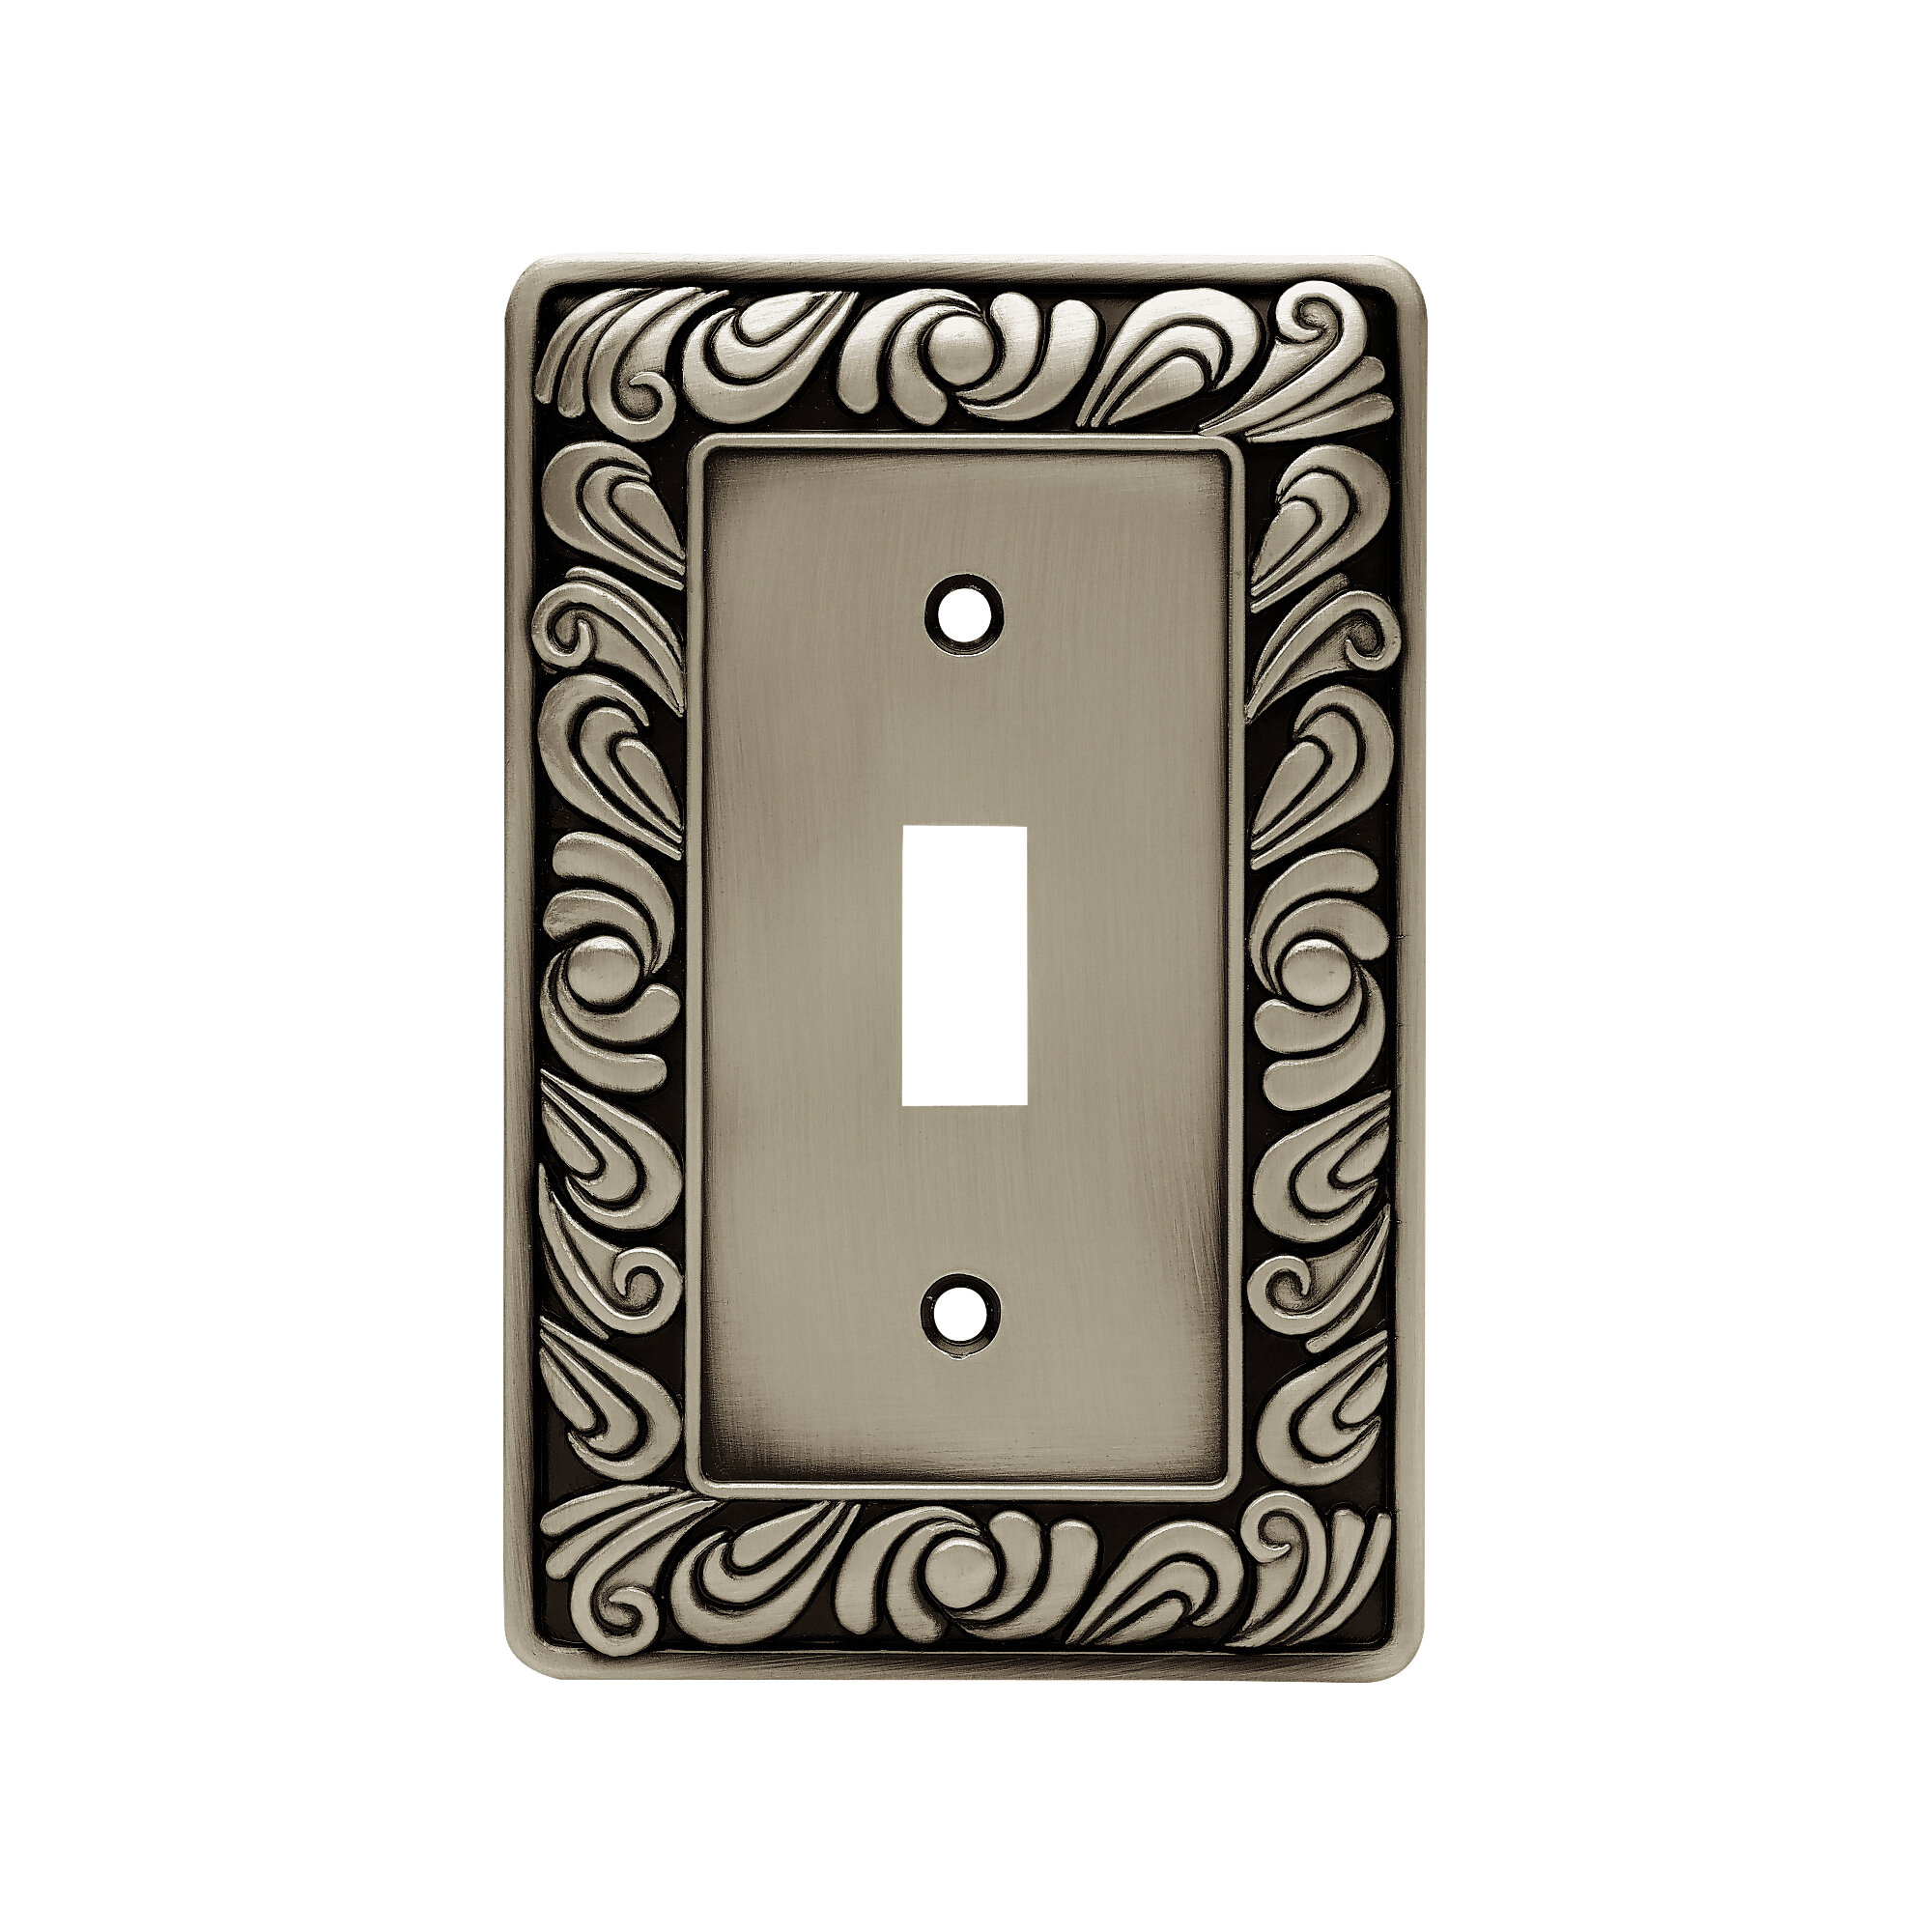 Franklin Brass Paisley 1 Gang Toggle Light Switch Wall Plate Reviews Wayfair